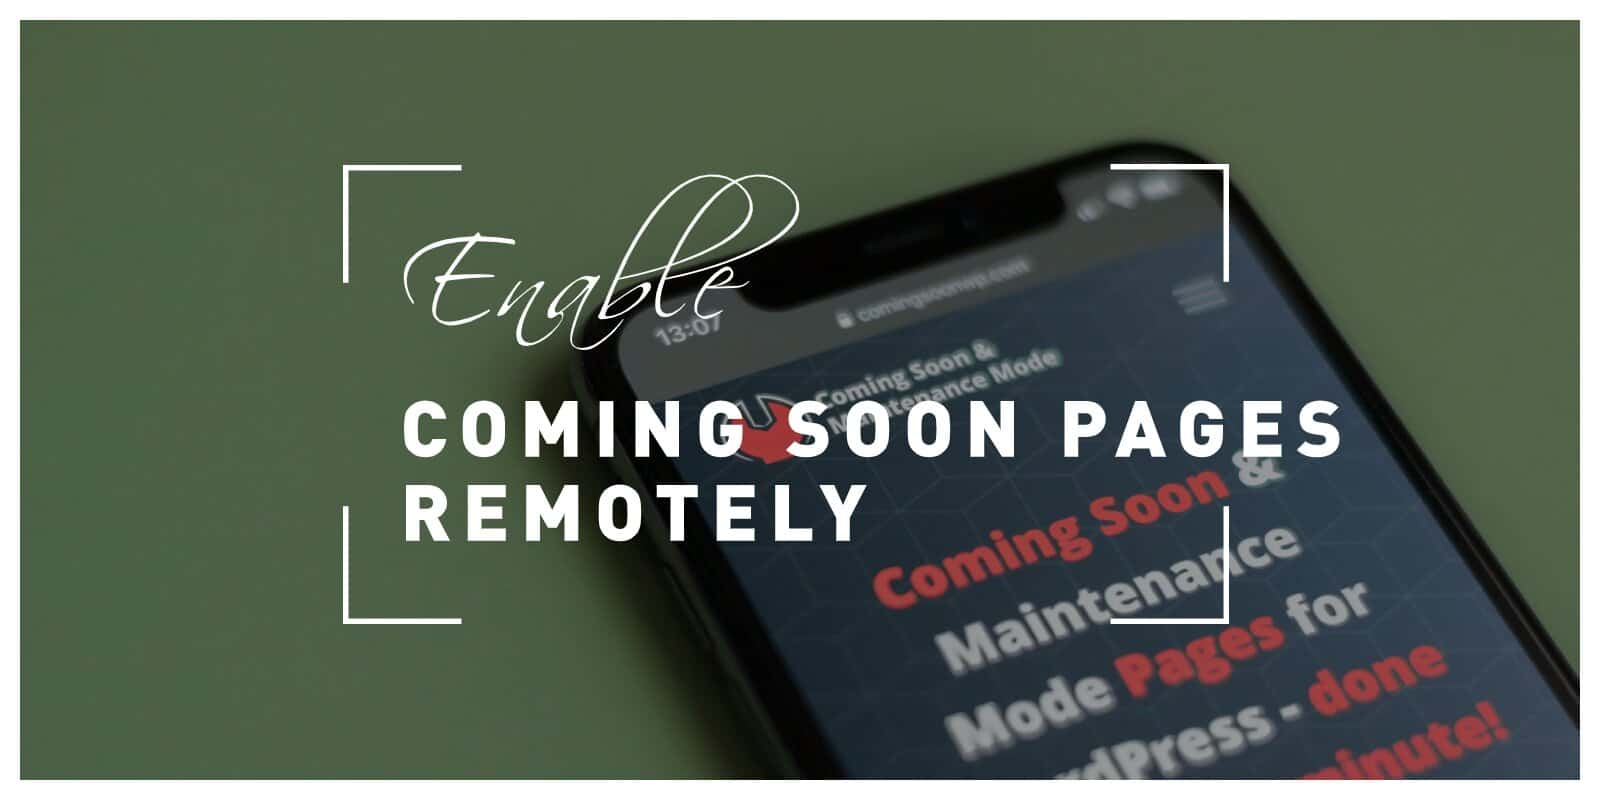 How to Remotely Enable Coming Soon Pages